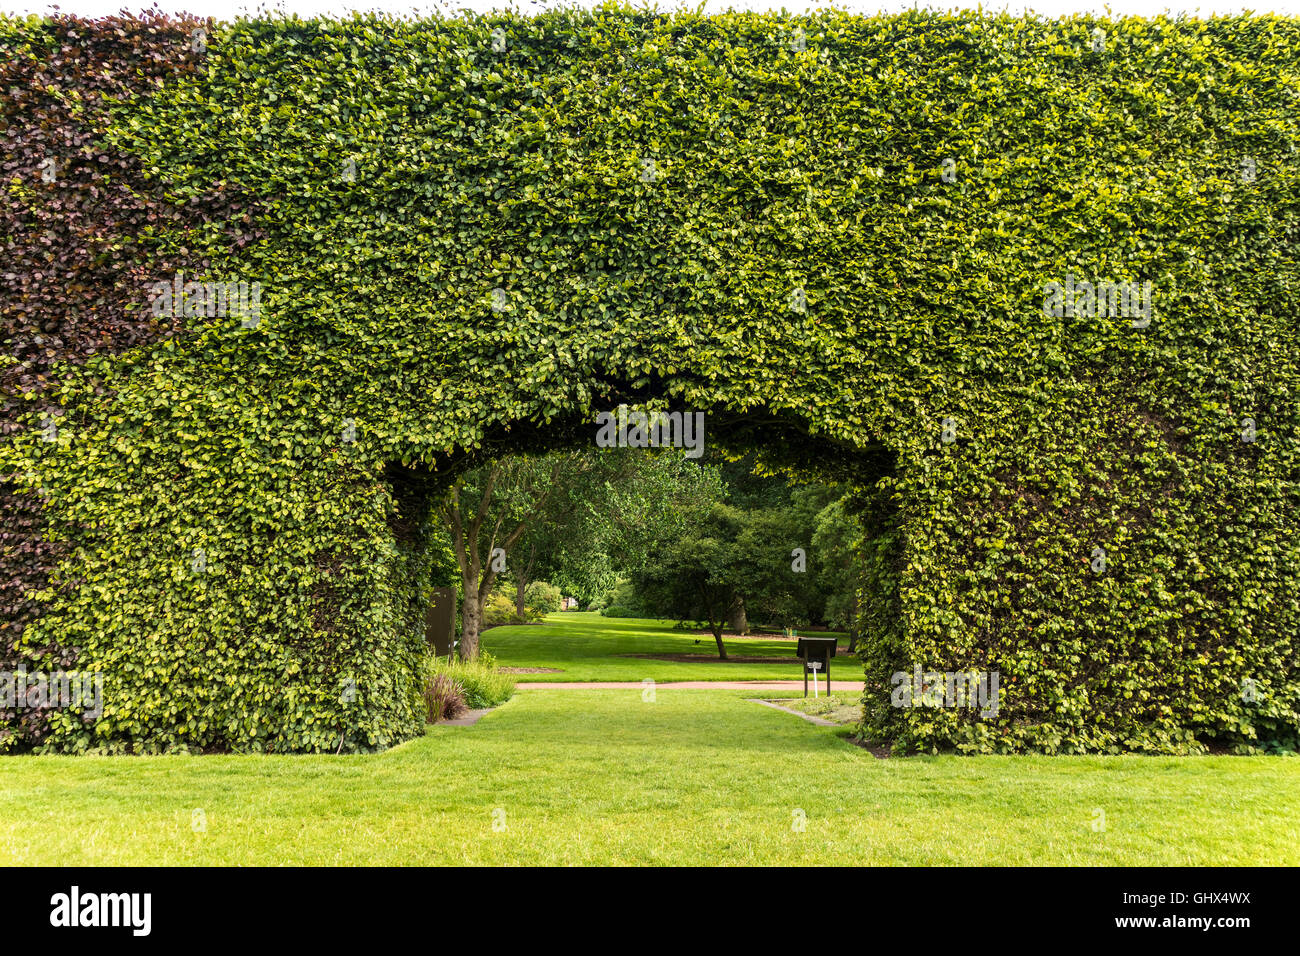 Royal Botanic Garden Edinburgh RBGE. Famous century-old Beech Hedge 8 meters; 23ft high. - Stock Image